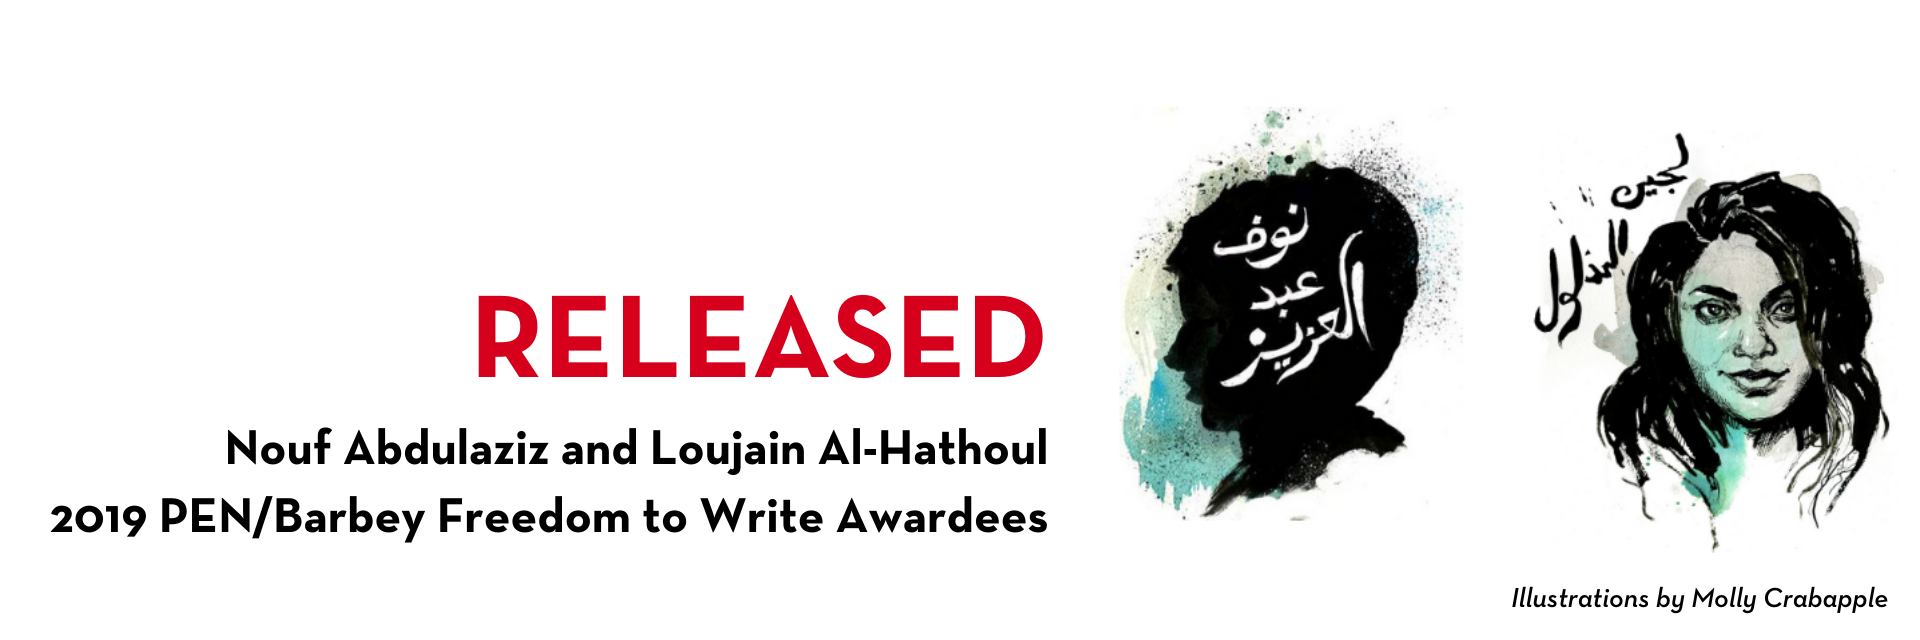 "Illustrations of Nouf Abdulaziz and Loujain Al-Hathoul with the following text on the left: ""Released: Nouf Abdulaziz and Loujain Al-Hathoul, 2019 PEN/Barbey Freedom to Write Awardees"""